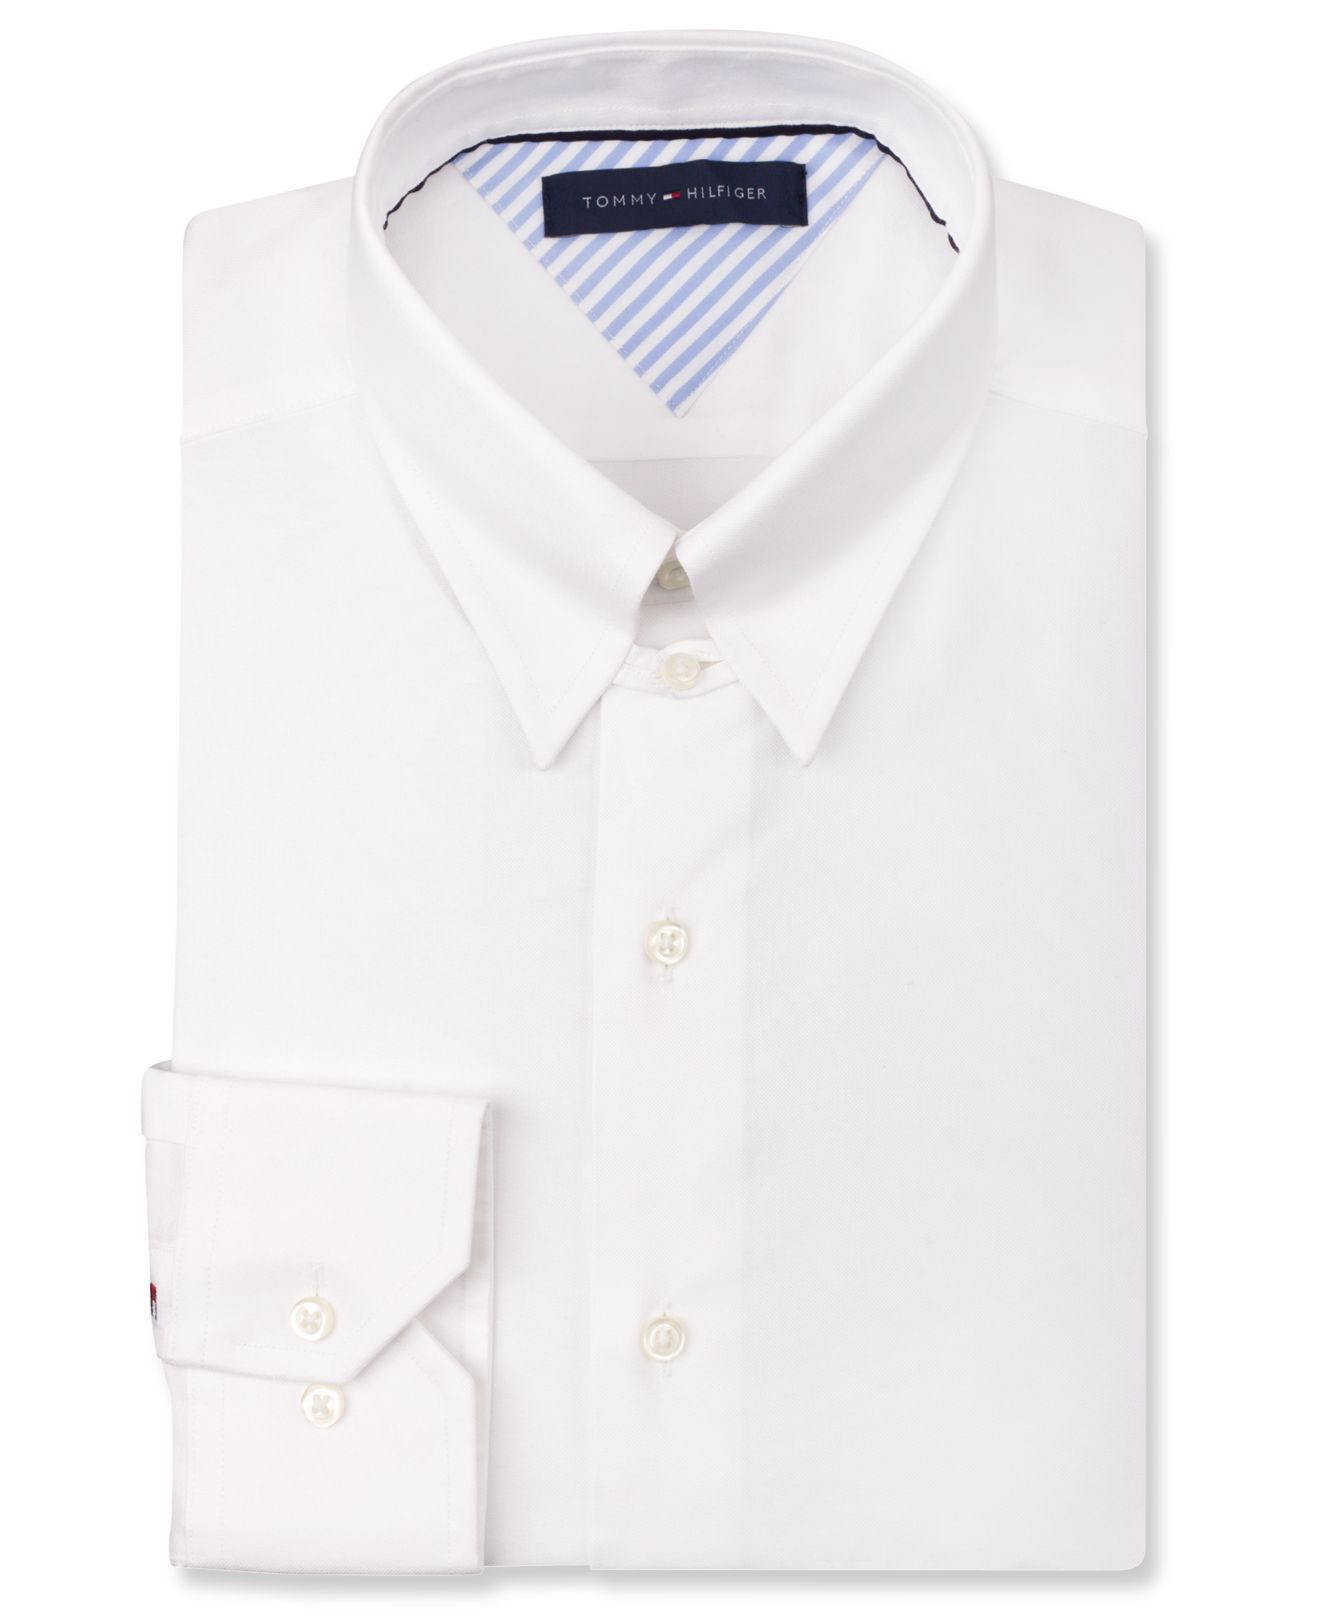 Lyst tommy hilfiger white tab collar dress shirt in for White non iron dress shirts